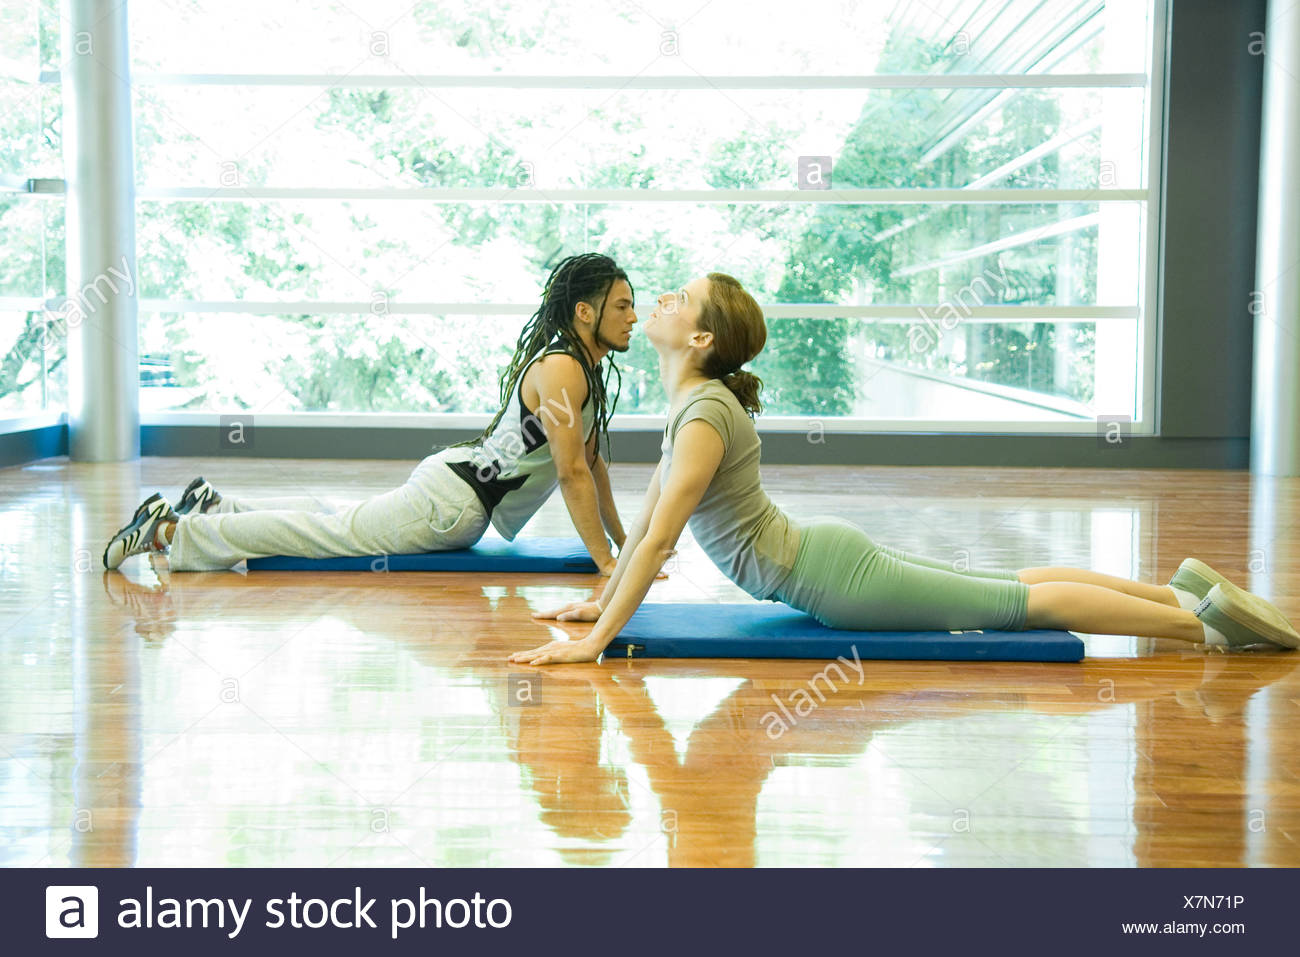 Two young adults doing cobra pose in yoga studio - Stock Image